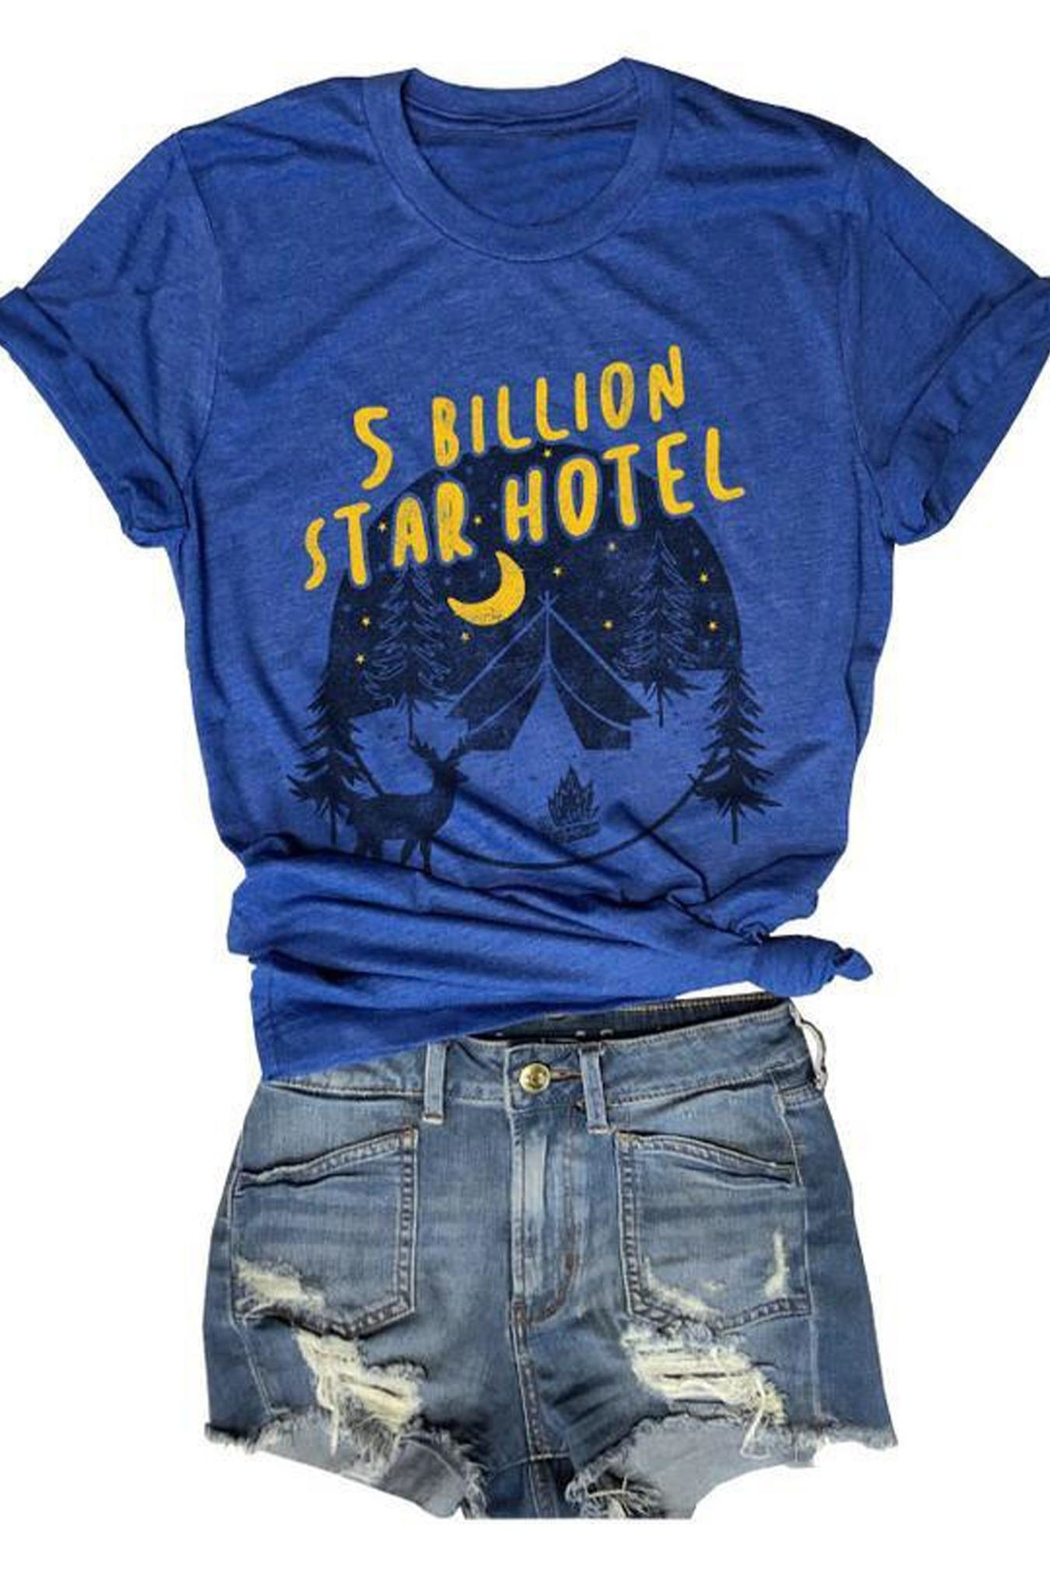 Everfitte 5-Billion Stars Tee - Front Cropped Image